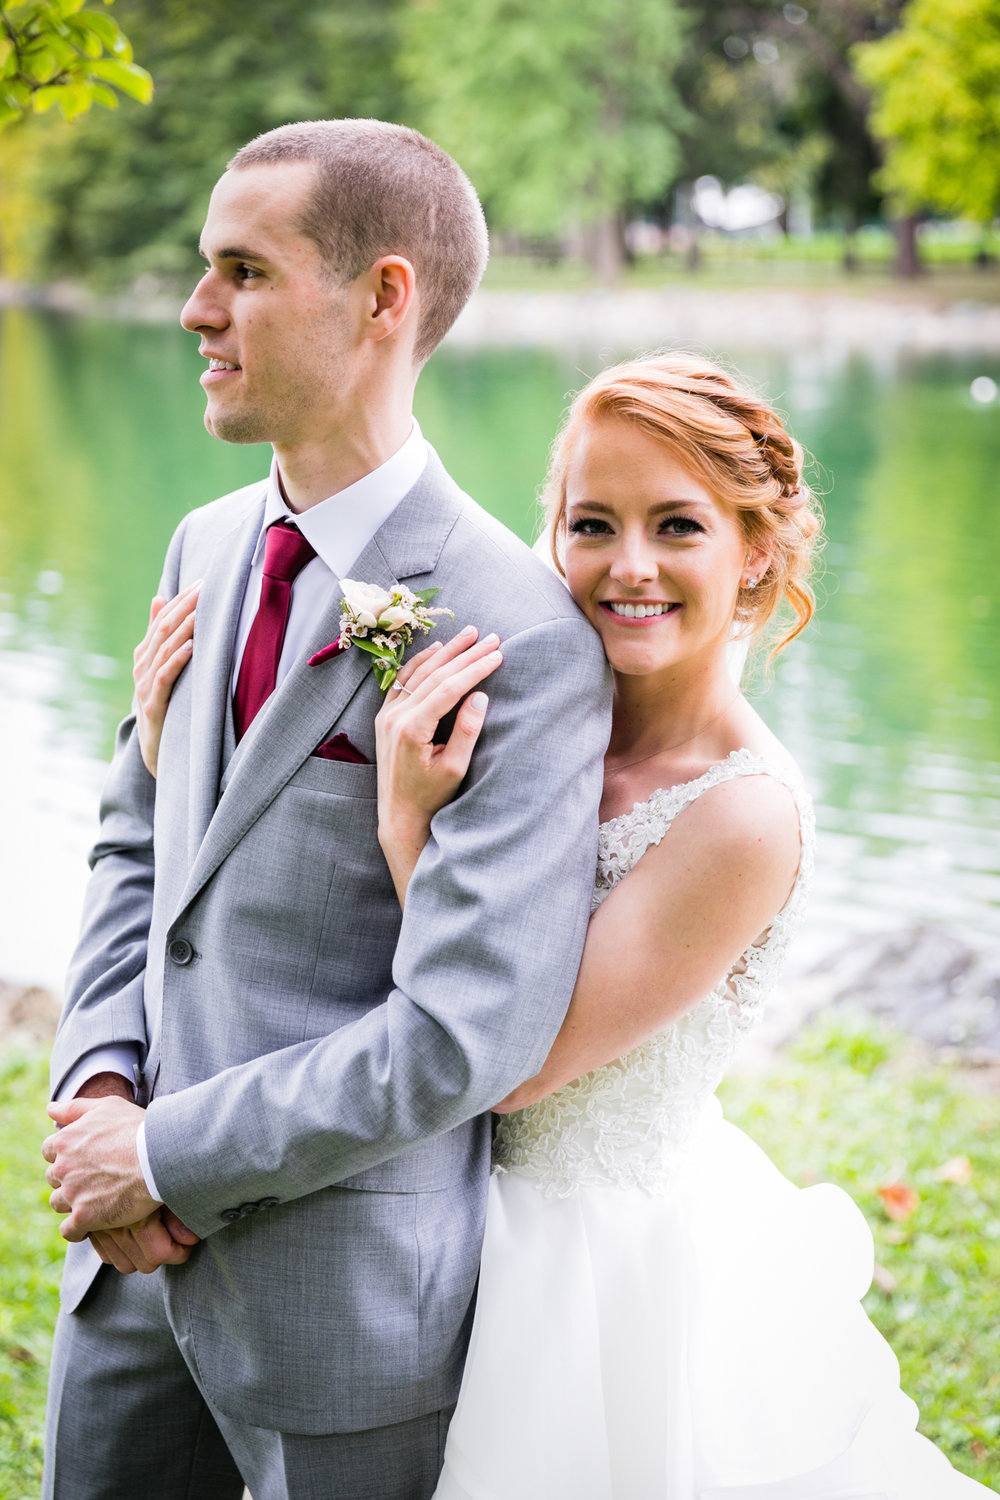 Eden Resorts and Spa Wedding Photography - Lovestruck Pictures-069.jpg